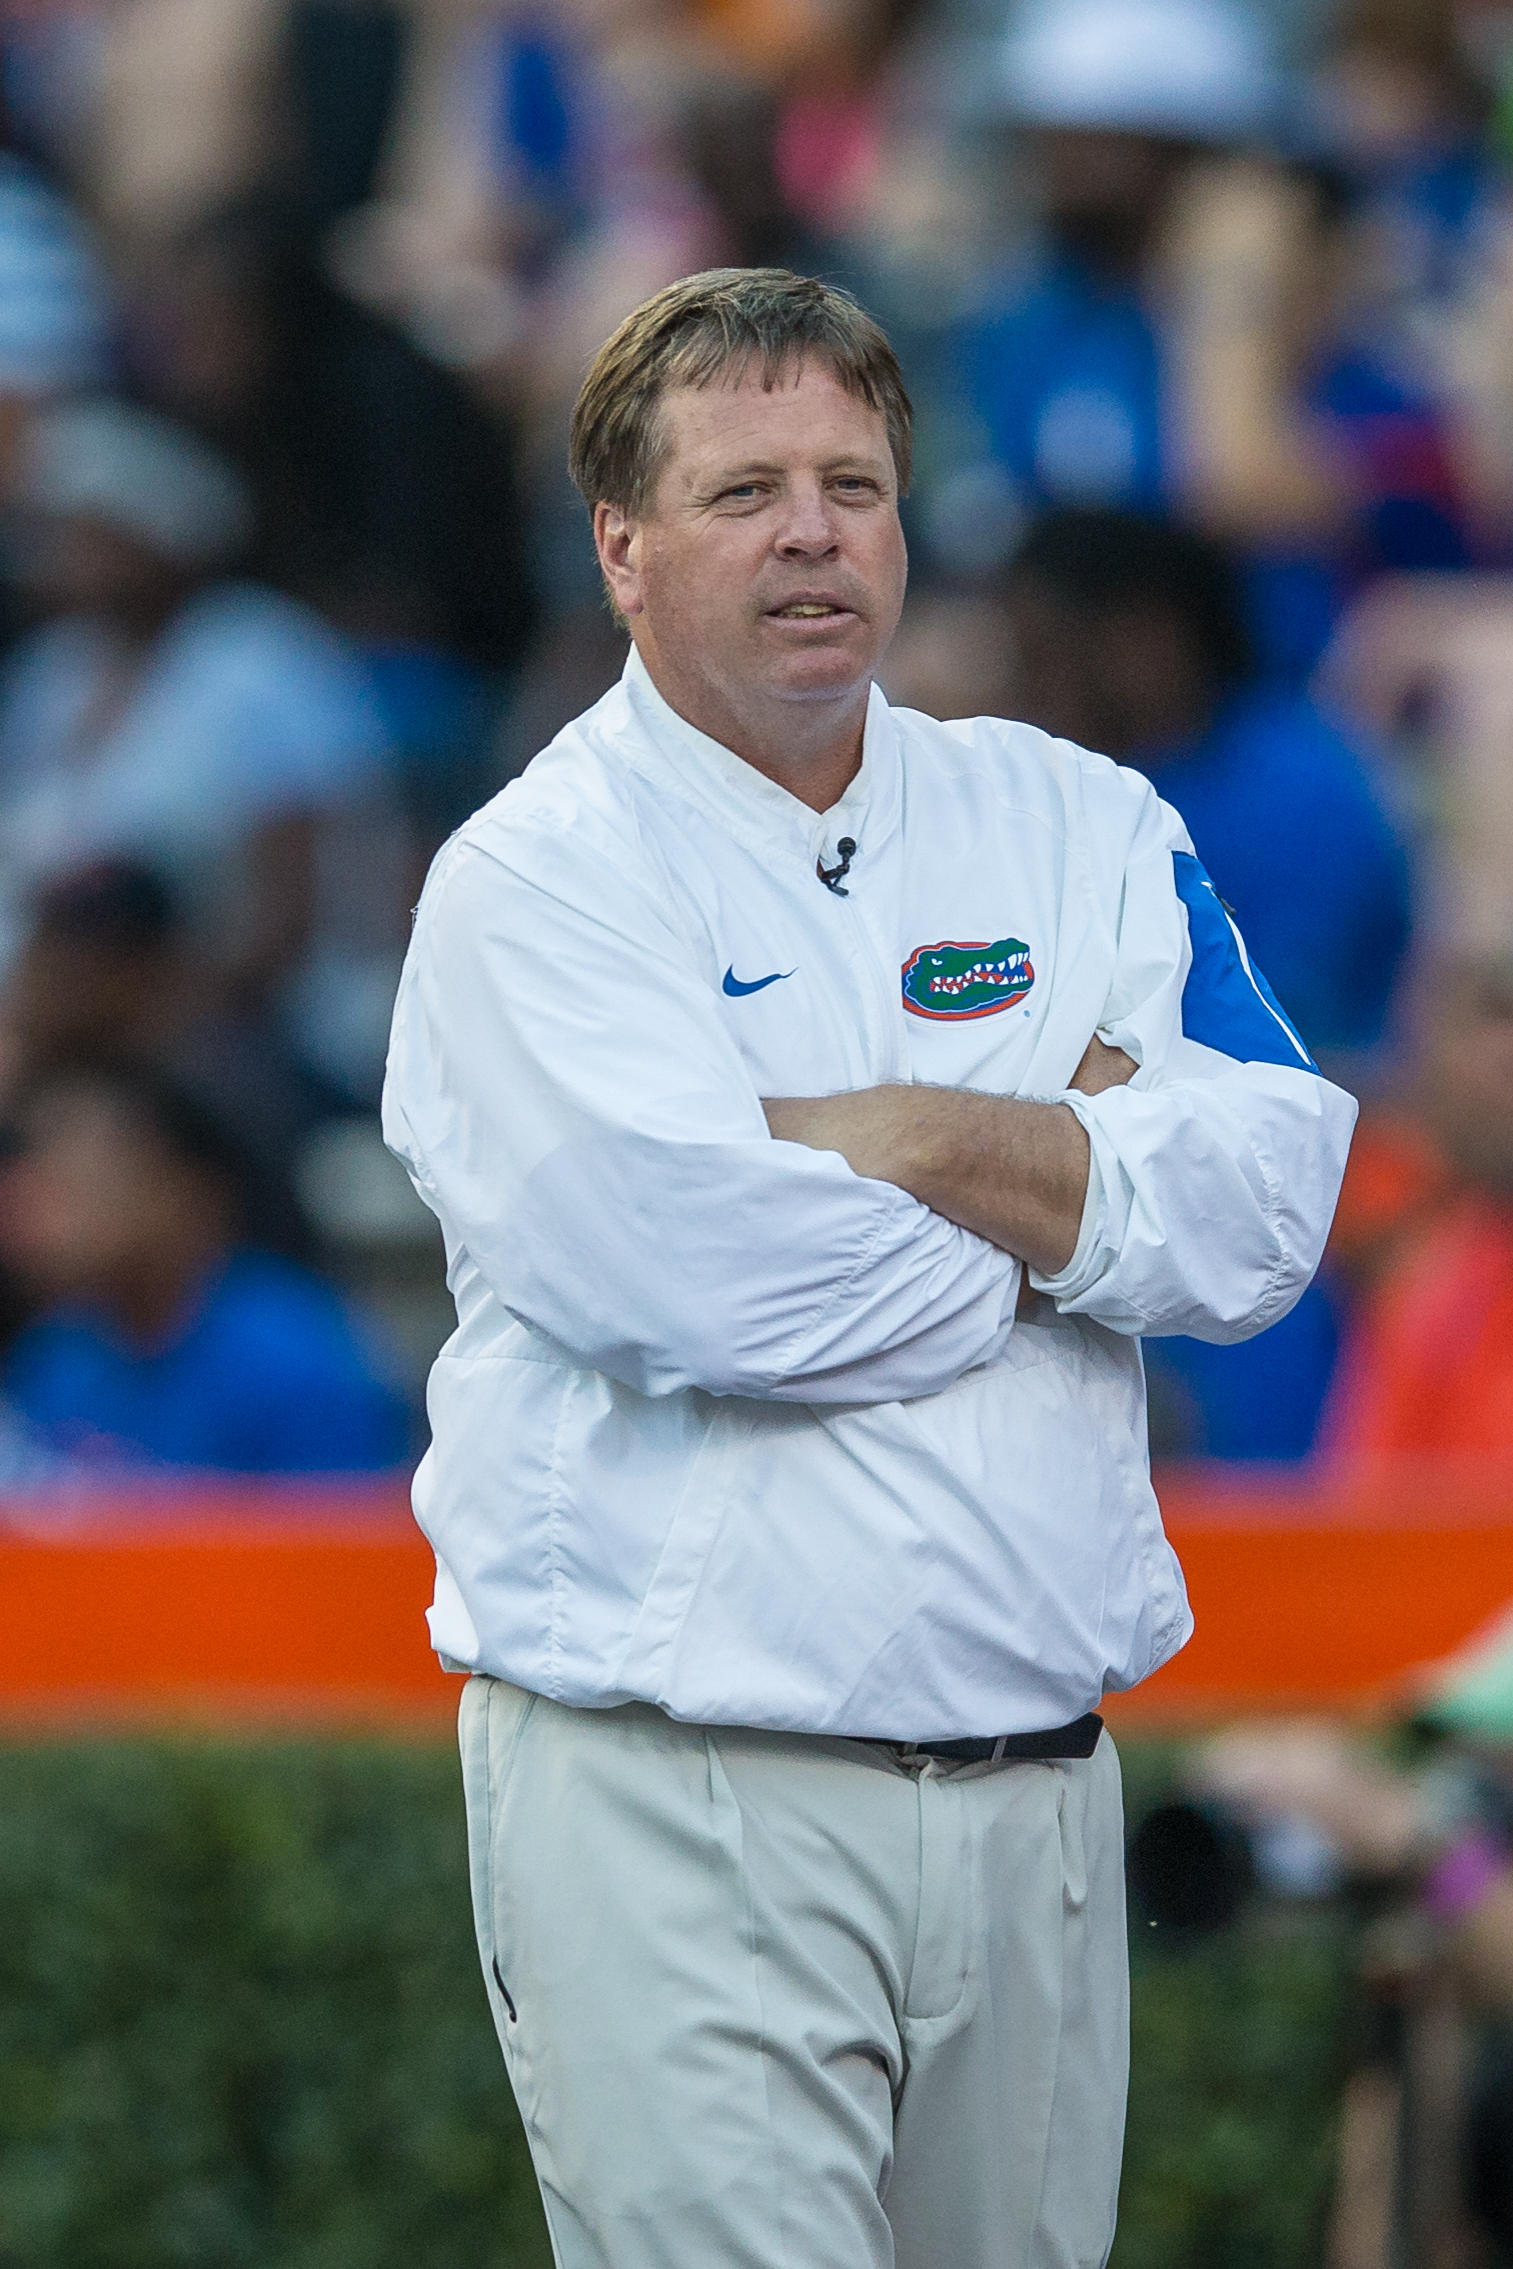 If the Gators beat Alabama Saturday, should they be in the playoffs?/TRAVIS PENDERGRASS